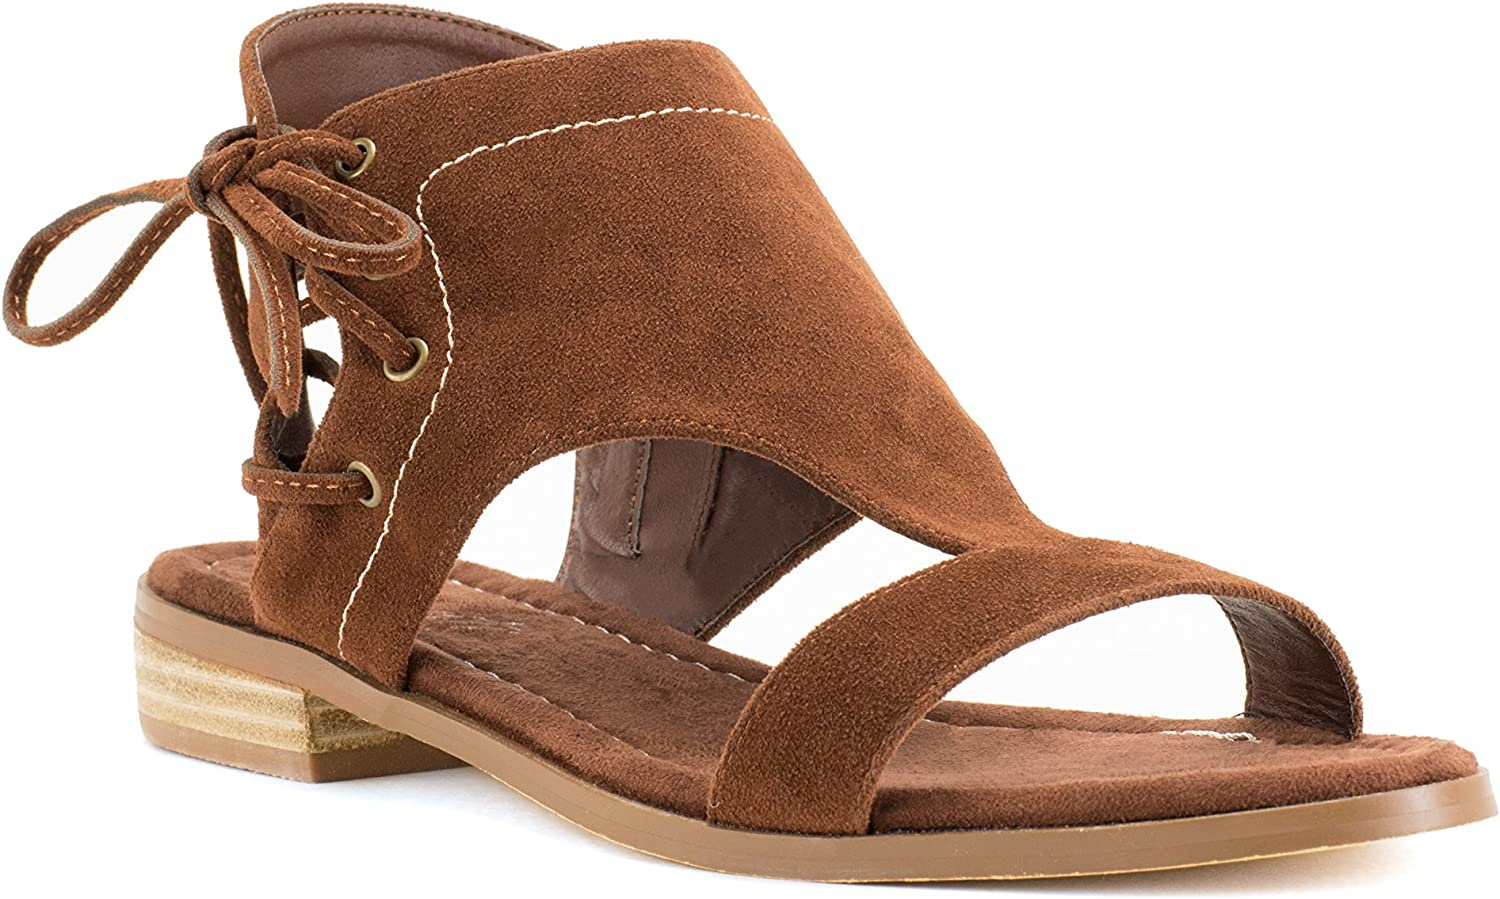 Avanti Bute Sandal with Lace Up Design and Zipper Side Closure